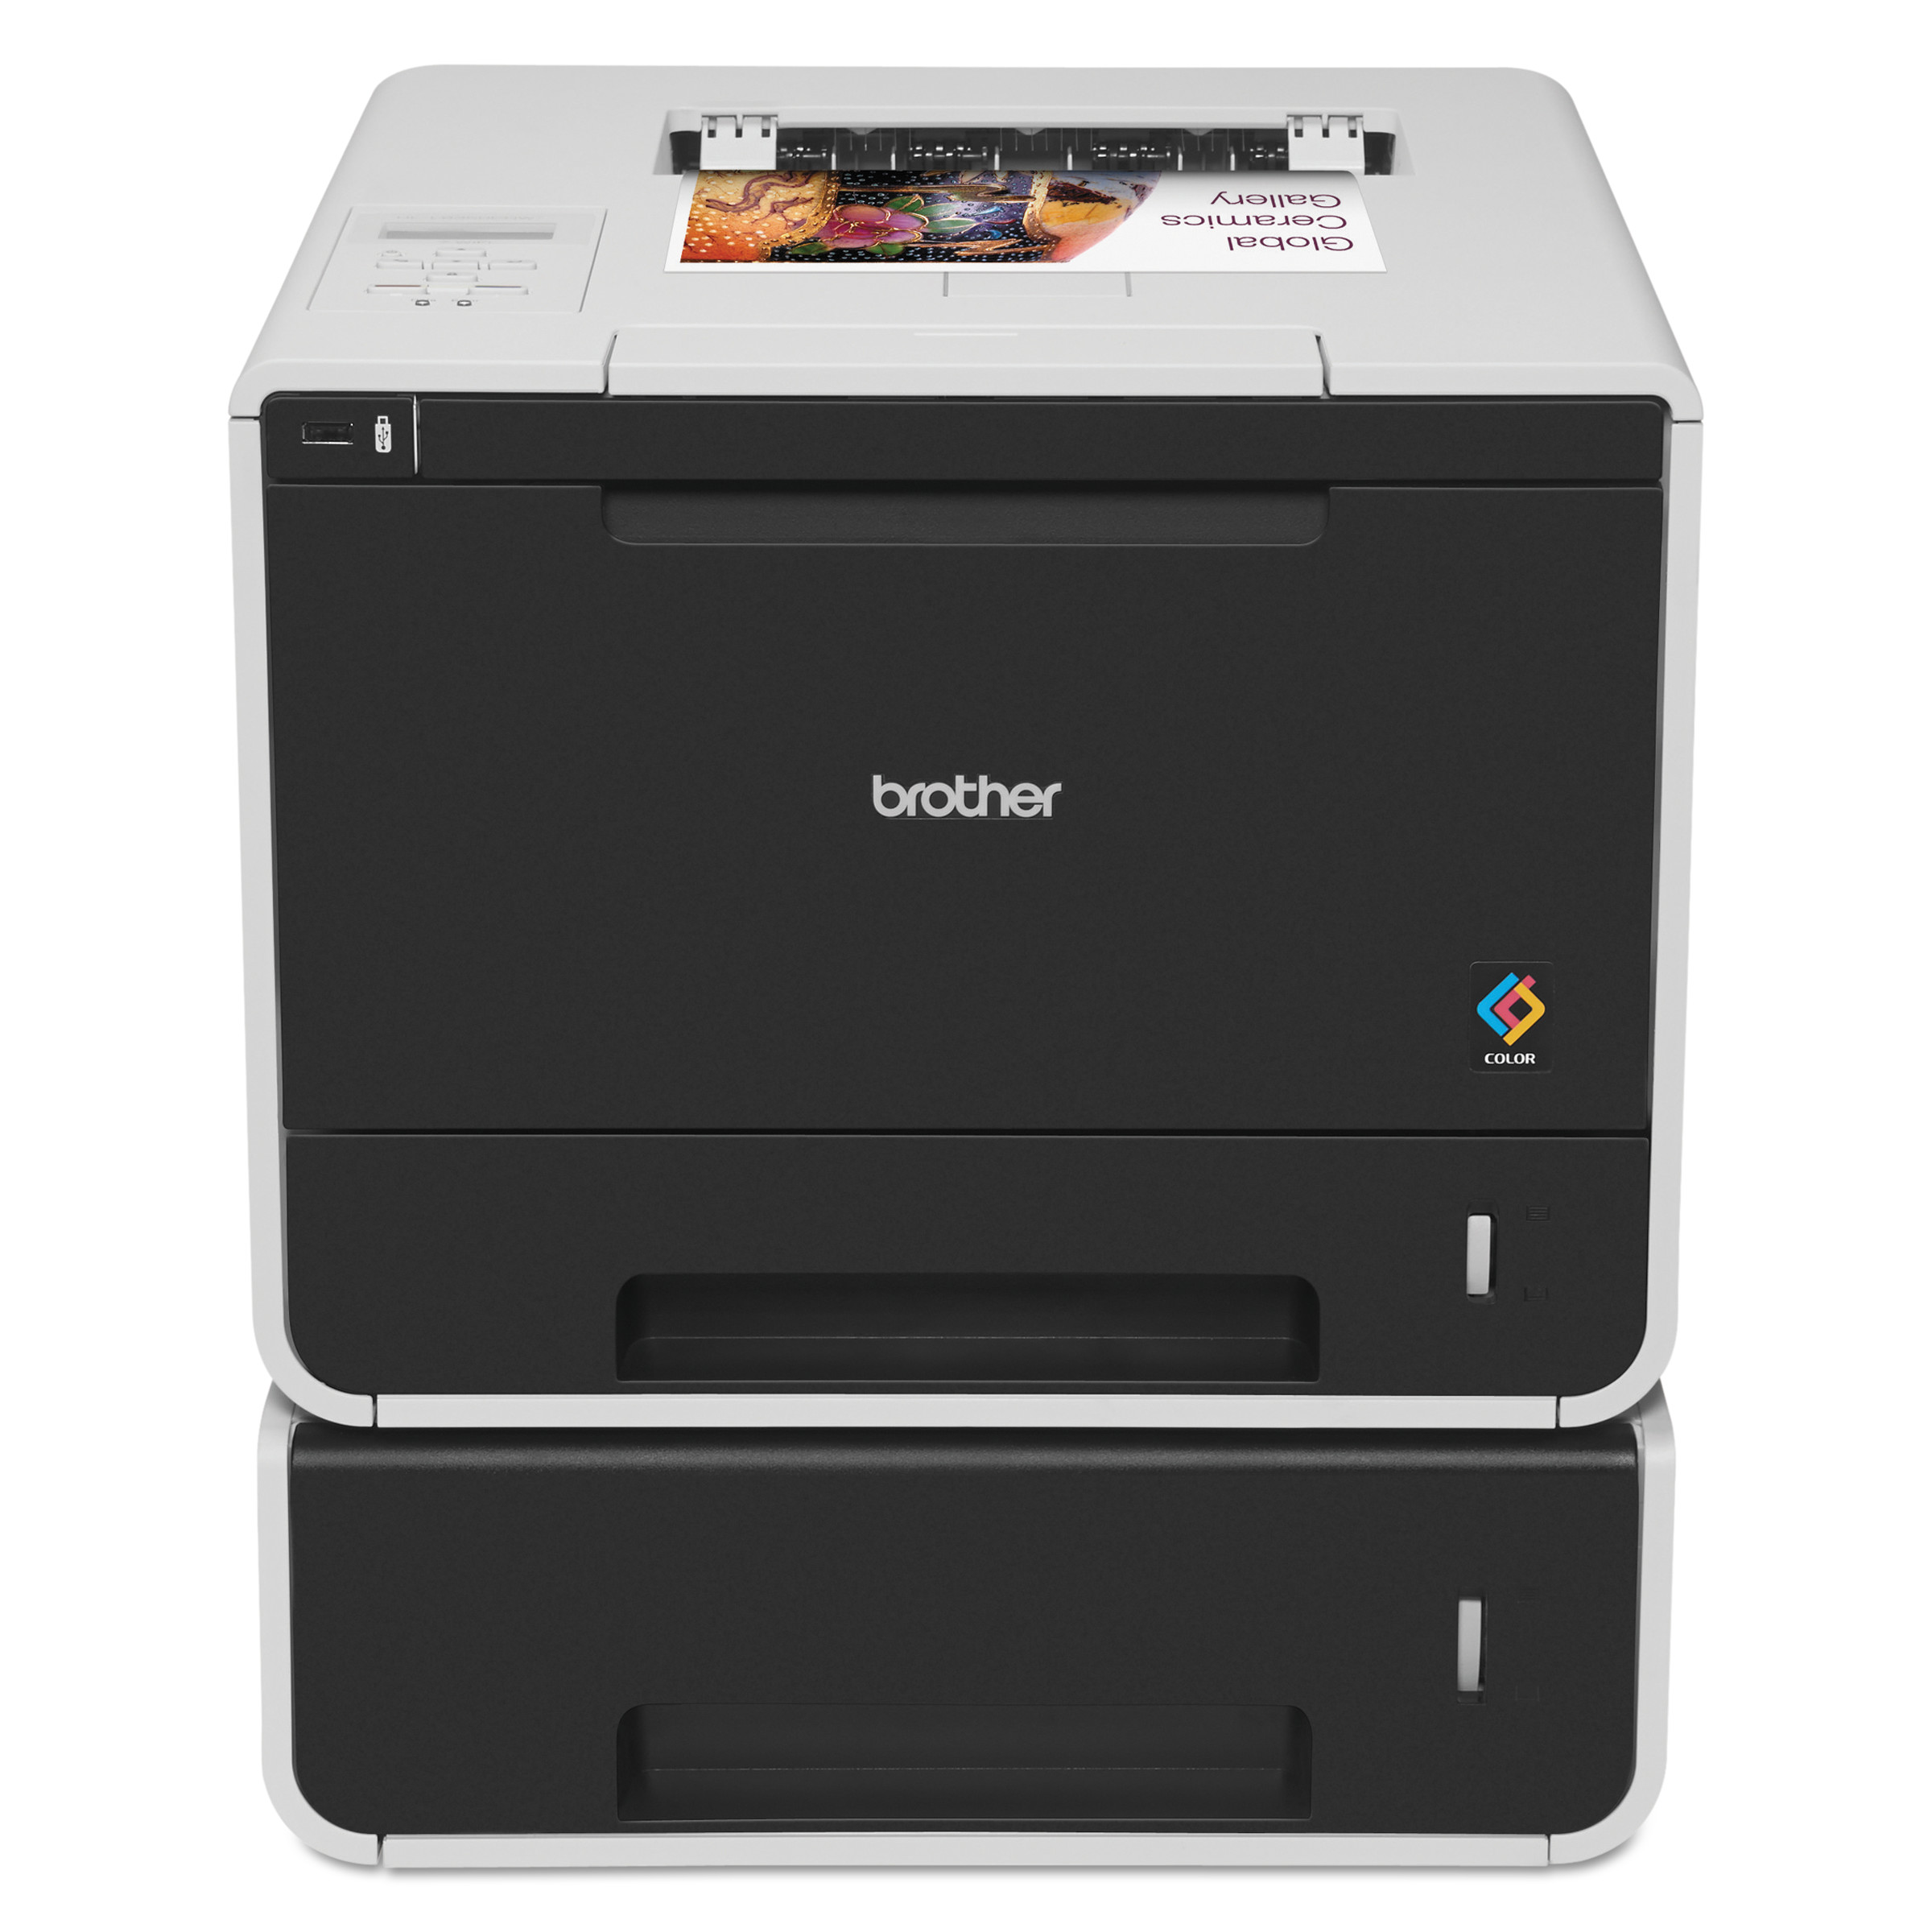 Brother HL-L8350CDWT Color Laser Printer with Wireless Networking and Dual Paper Trays by Brother